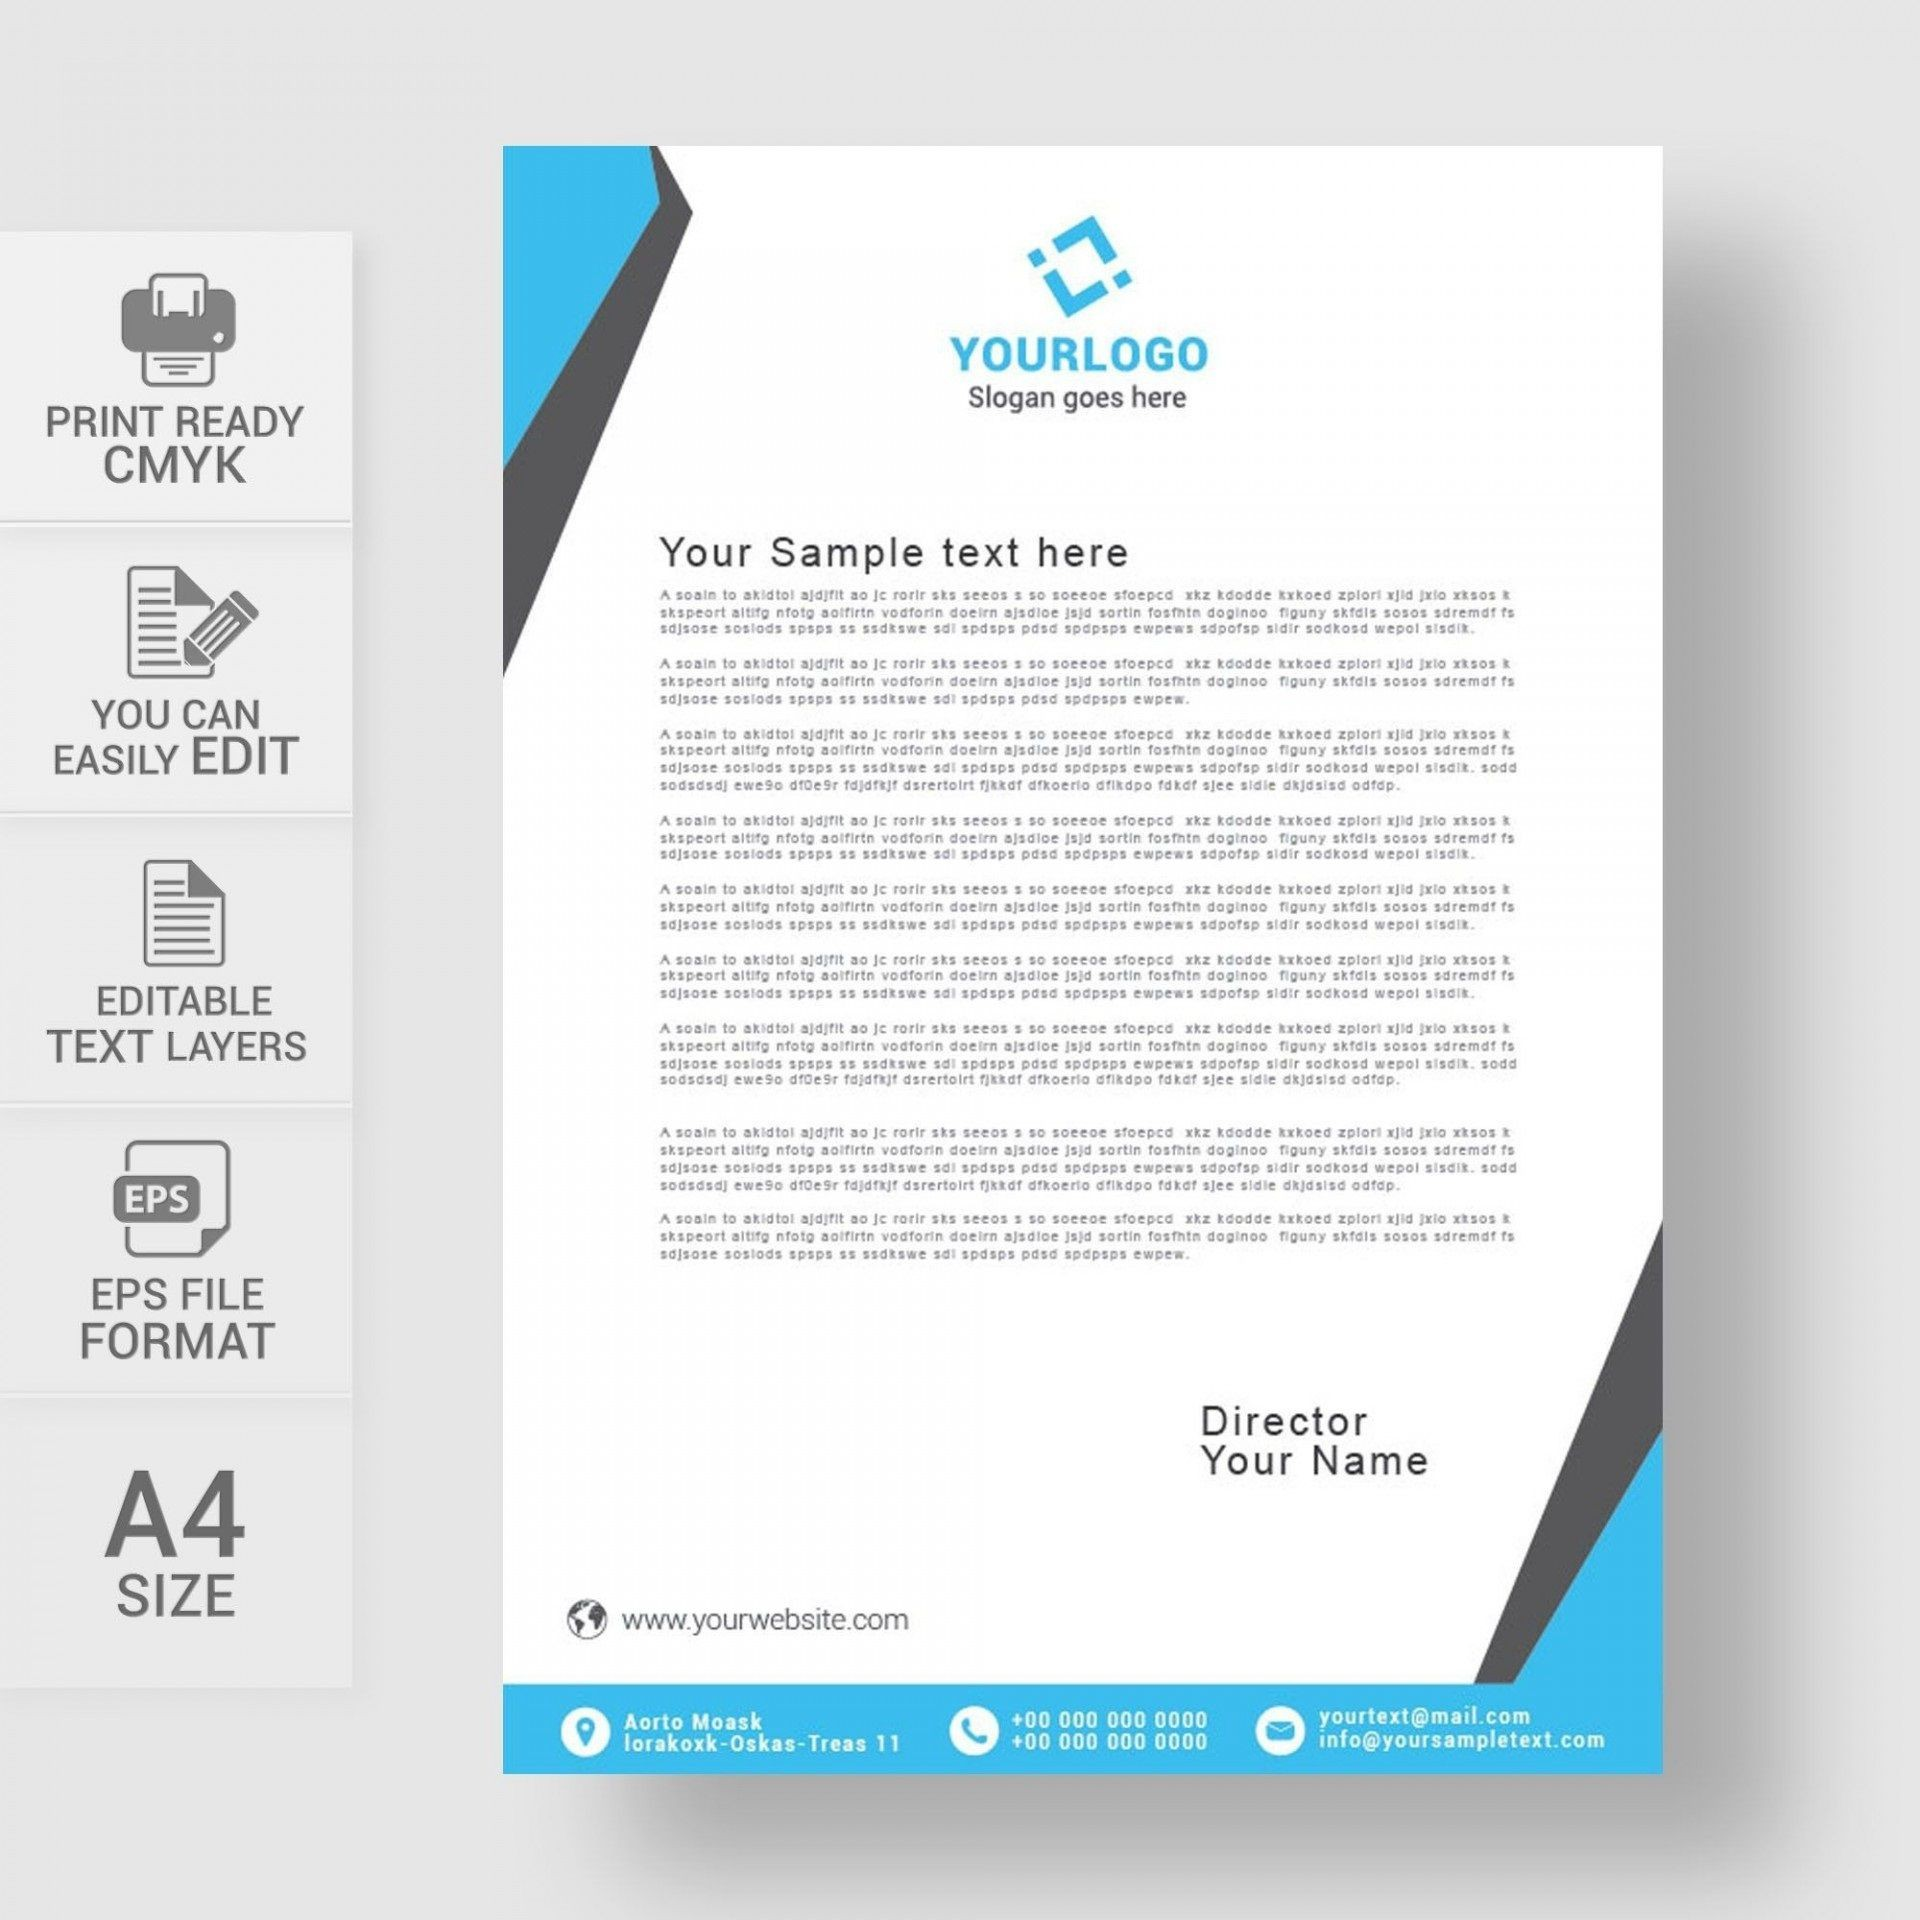 008 Formidable Letterhead Template Free Download Psd Highest Quality  A4 Company1920